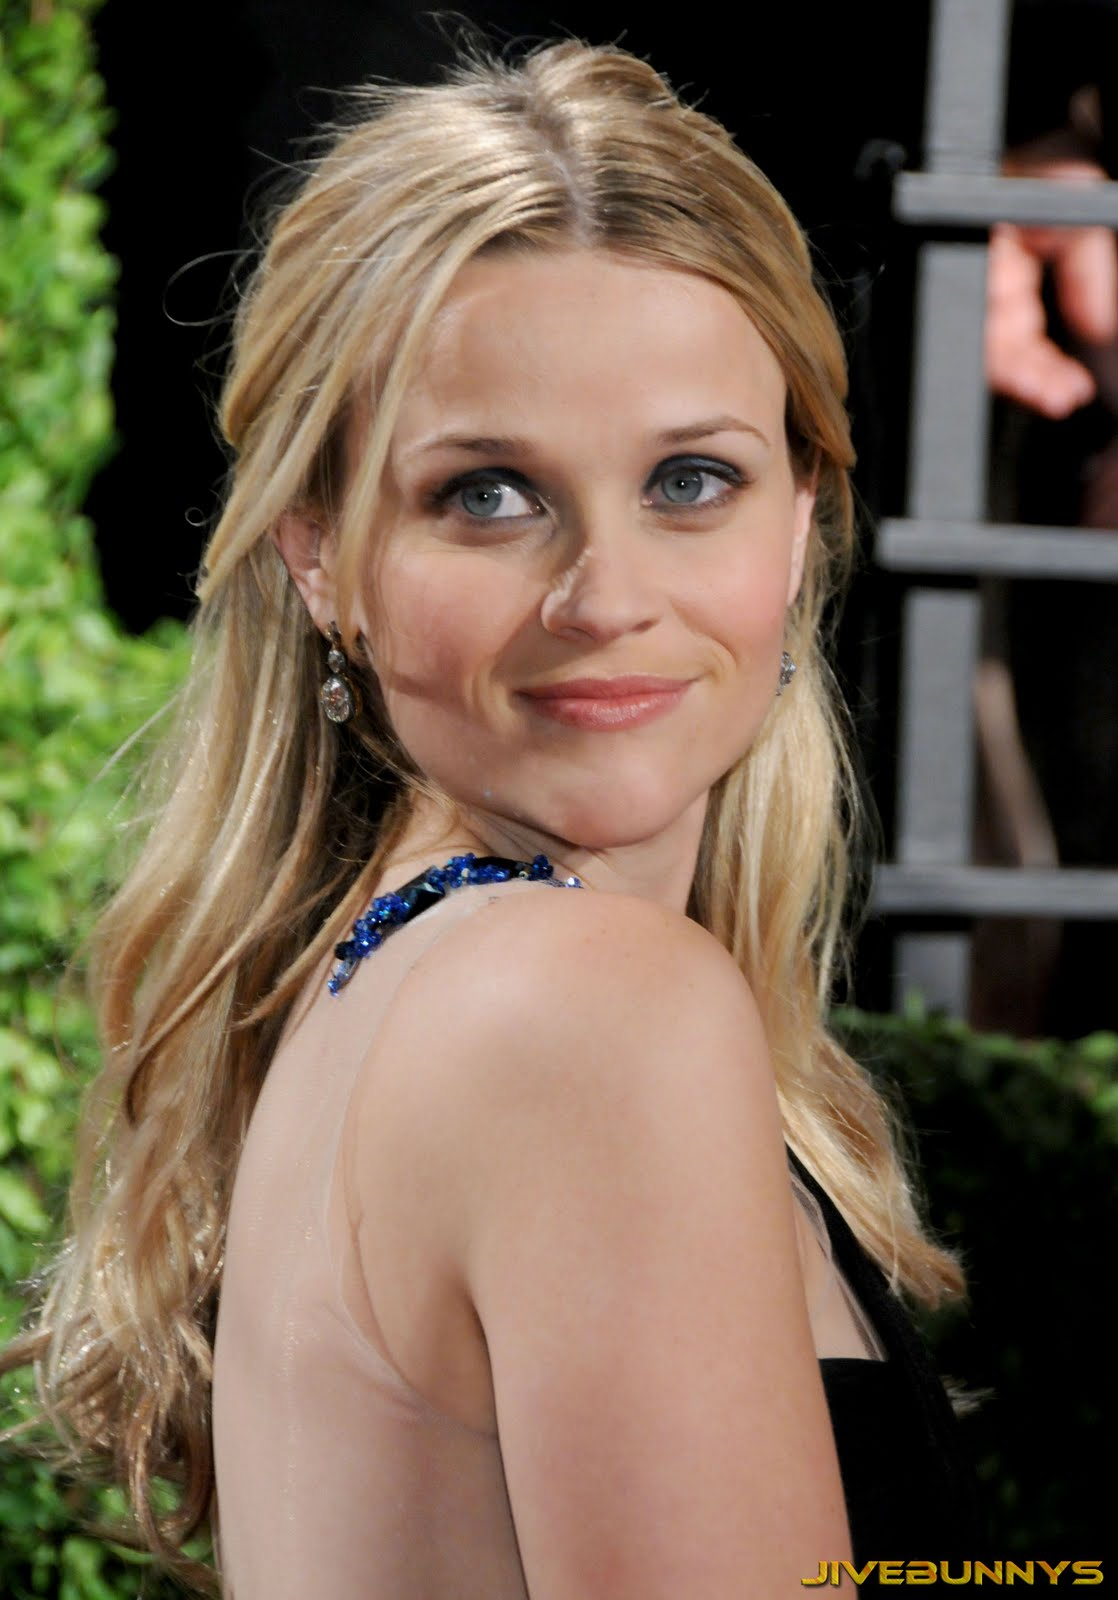 Reese Witherspoon special pictures (12)   Film Actresses Reese Witherspoon